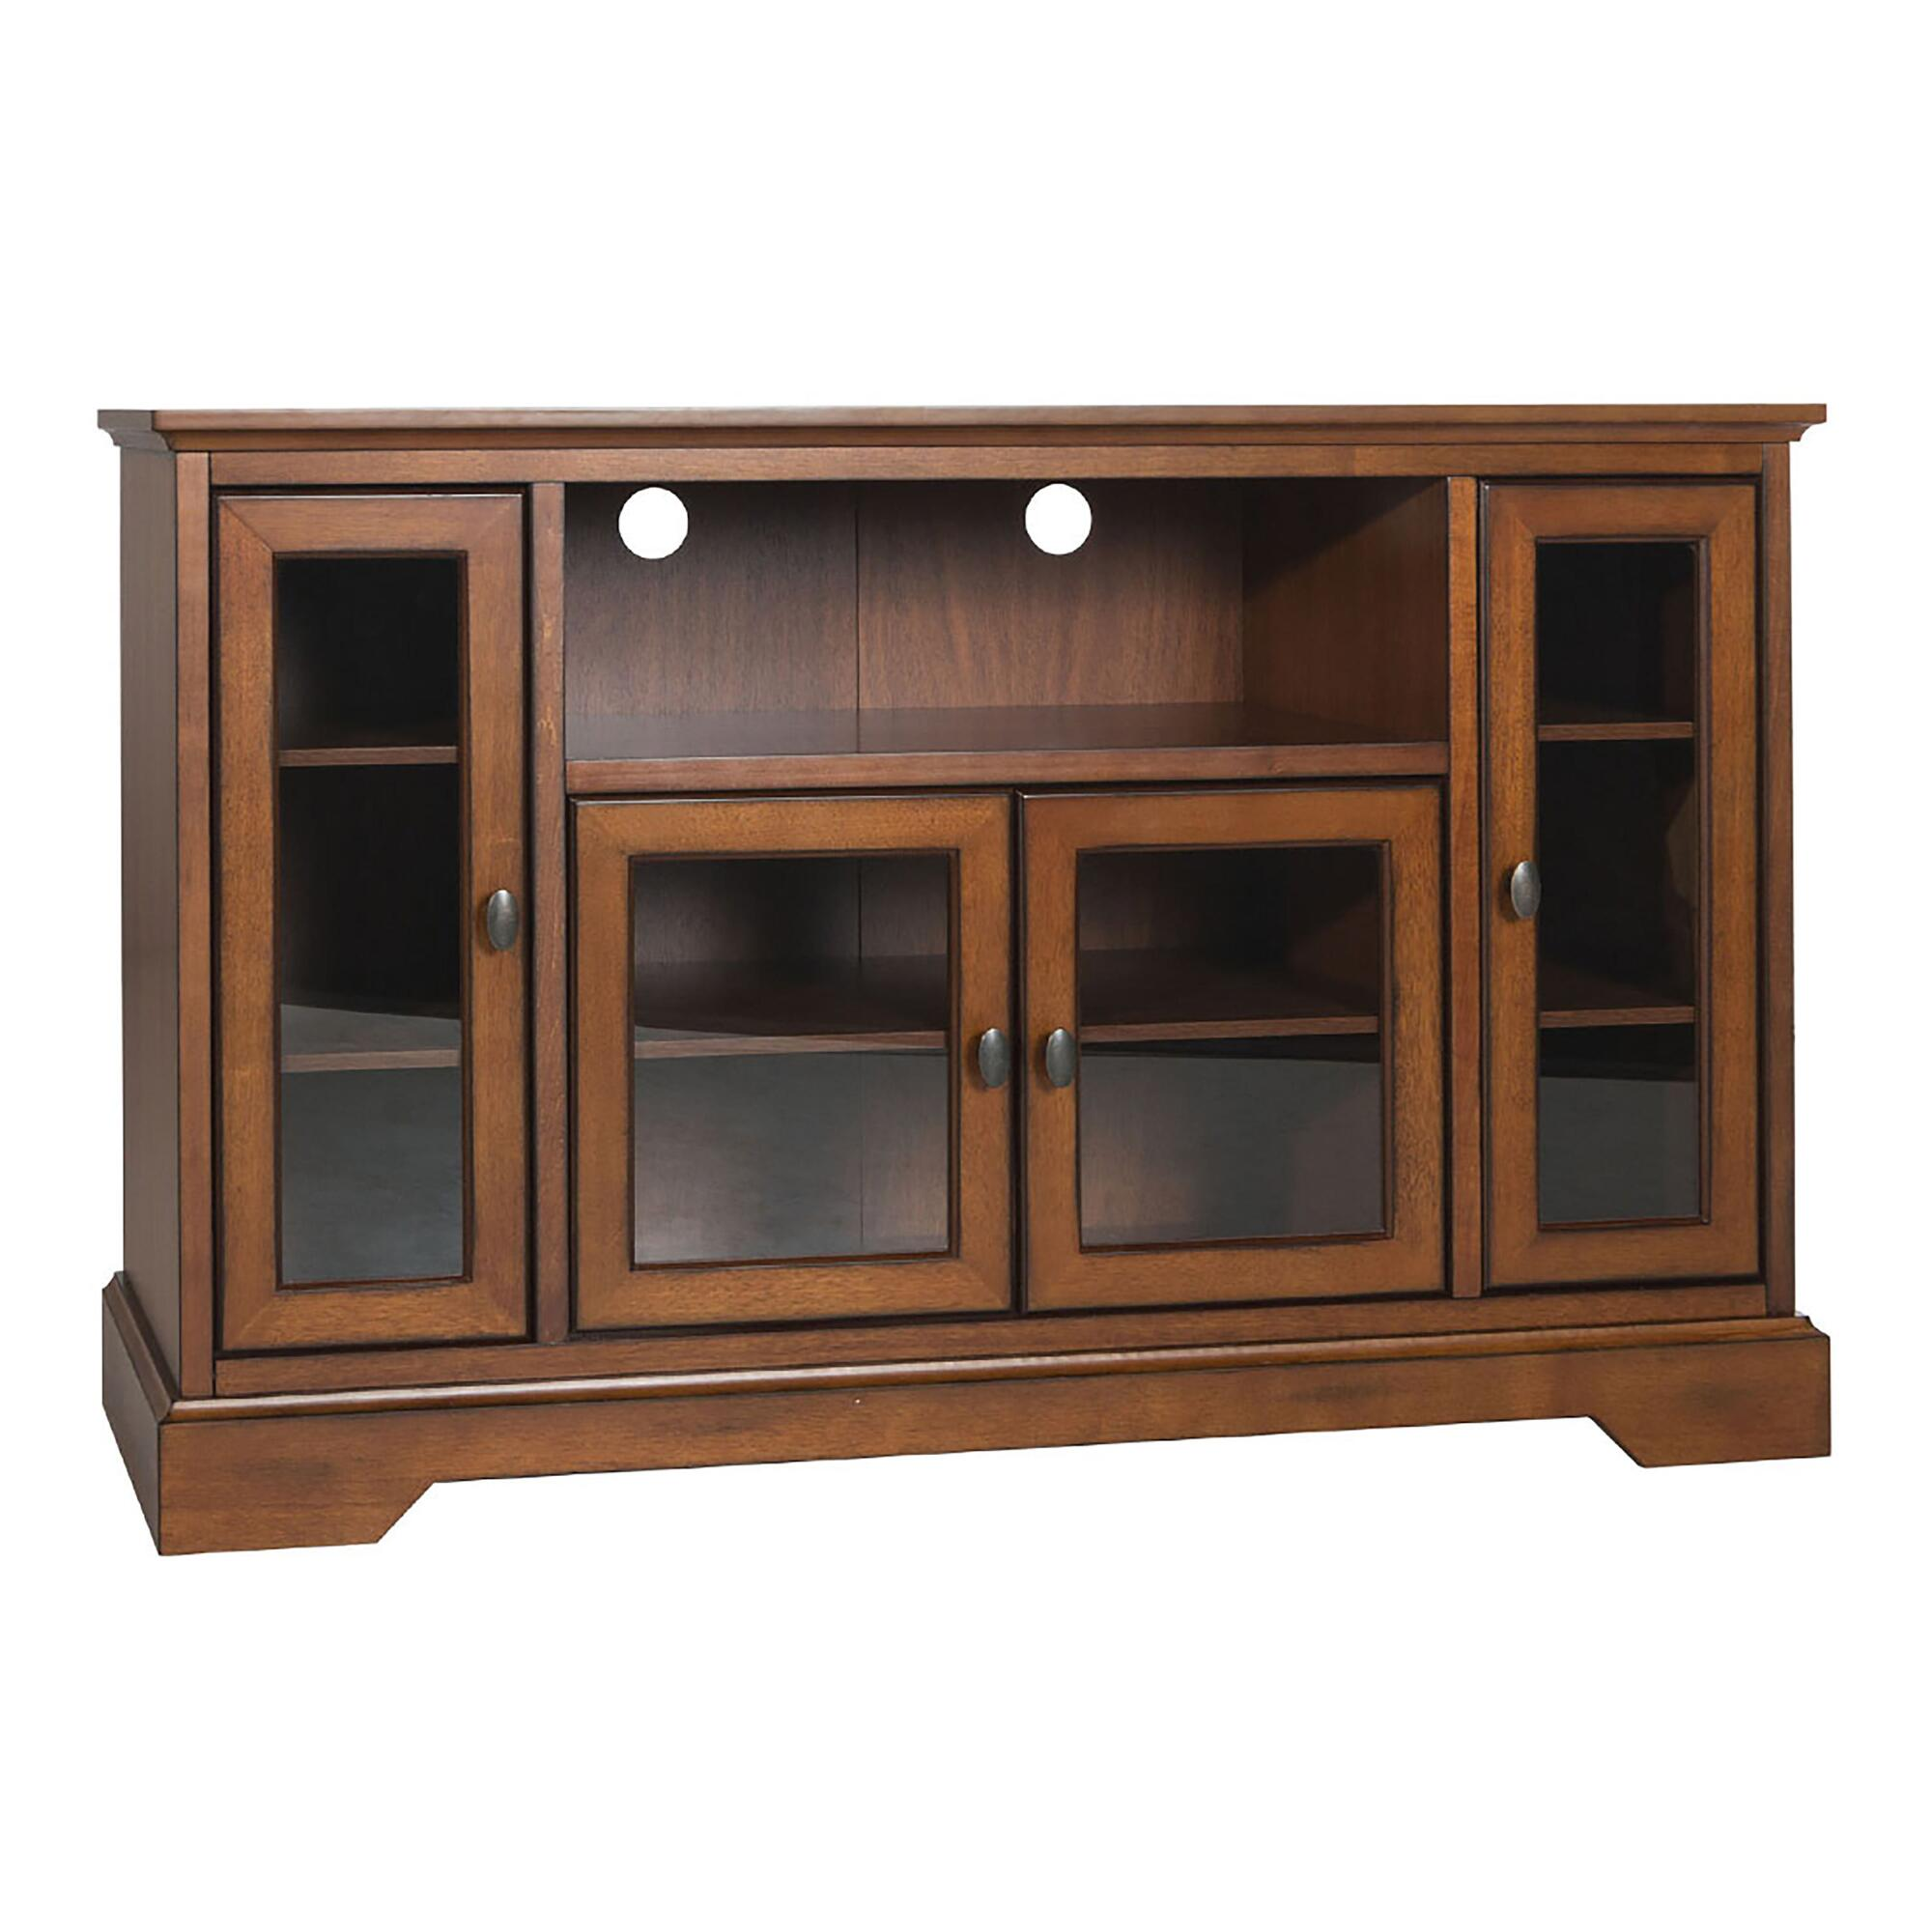 Rustic Brown Wood Rochester Storage Cabinet by World Market